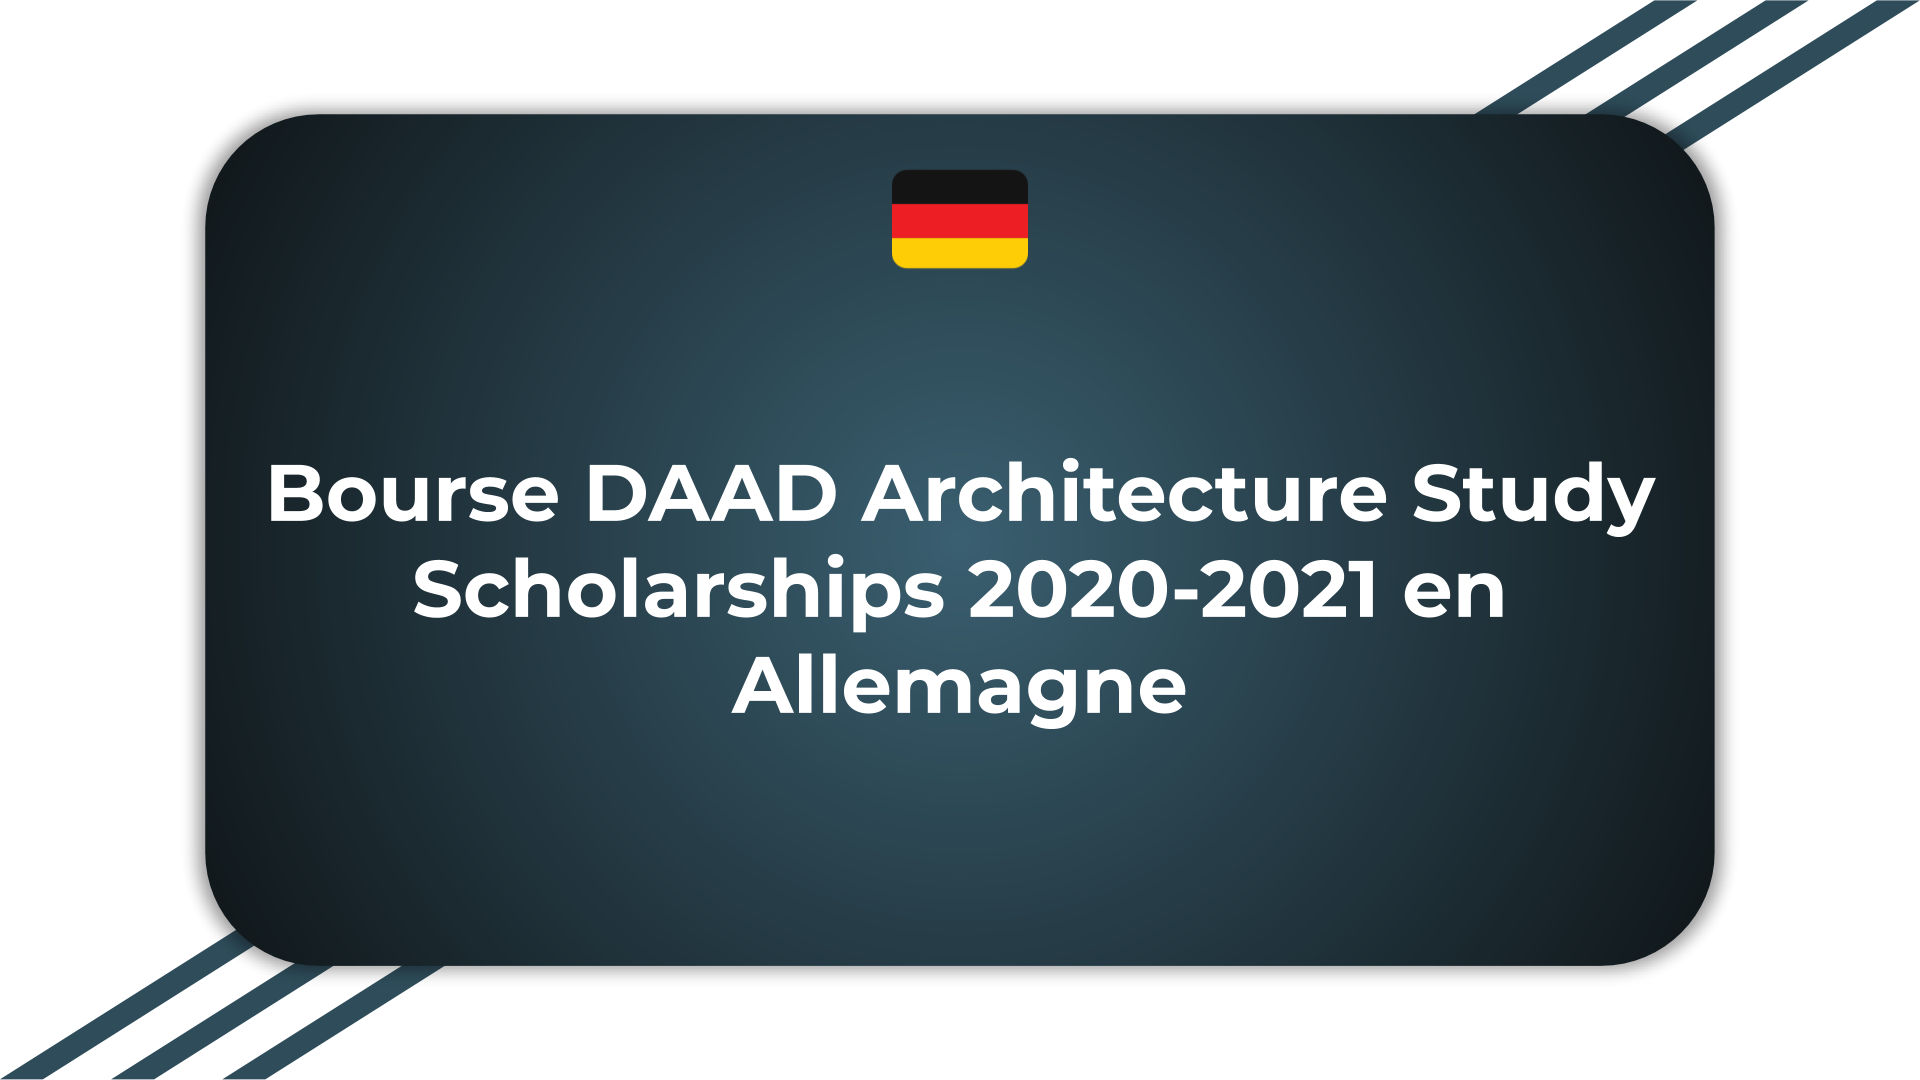 Bourse DAAD Architecture Study Scholarships